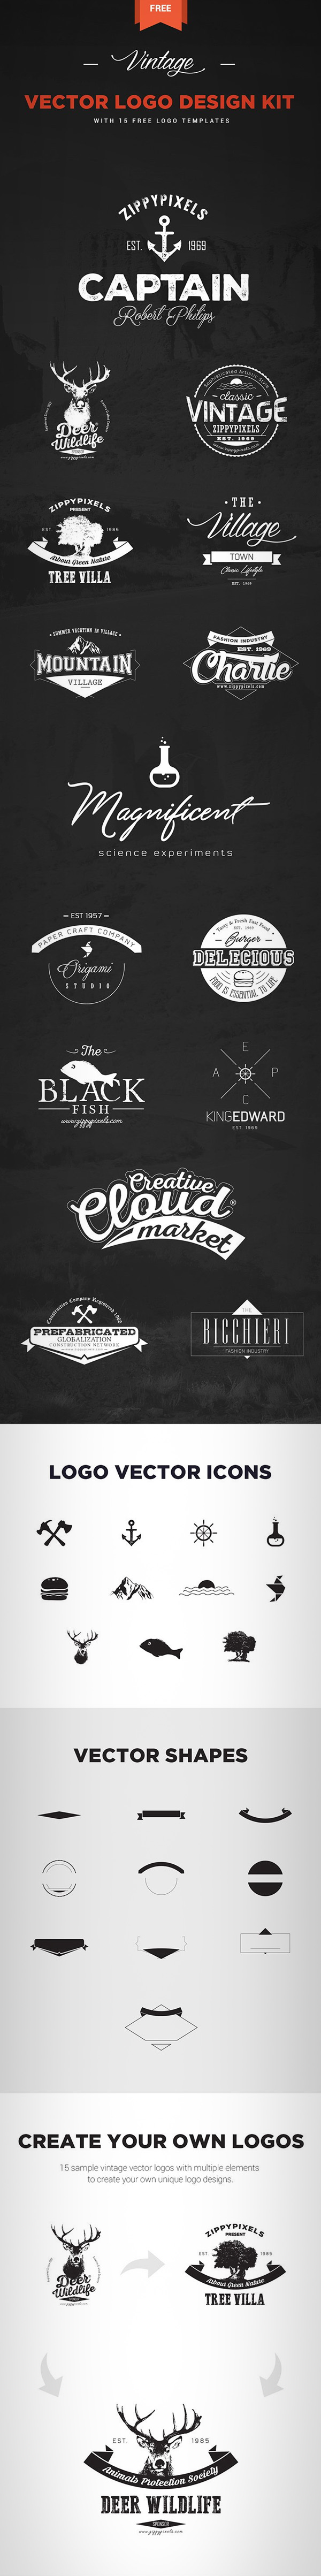 15 Free Vintage Vector Logo Templates and Logo Design Kit